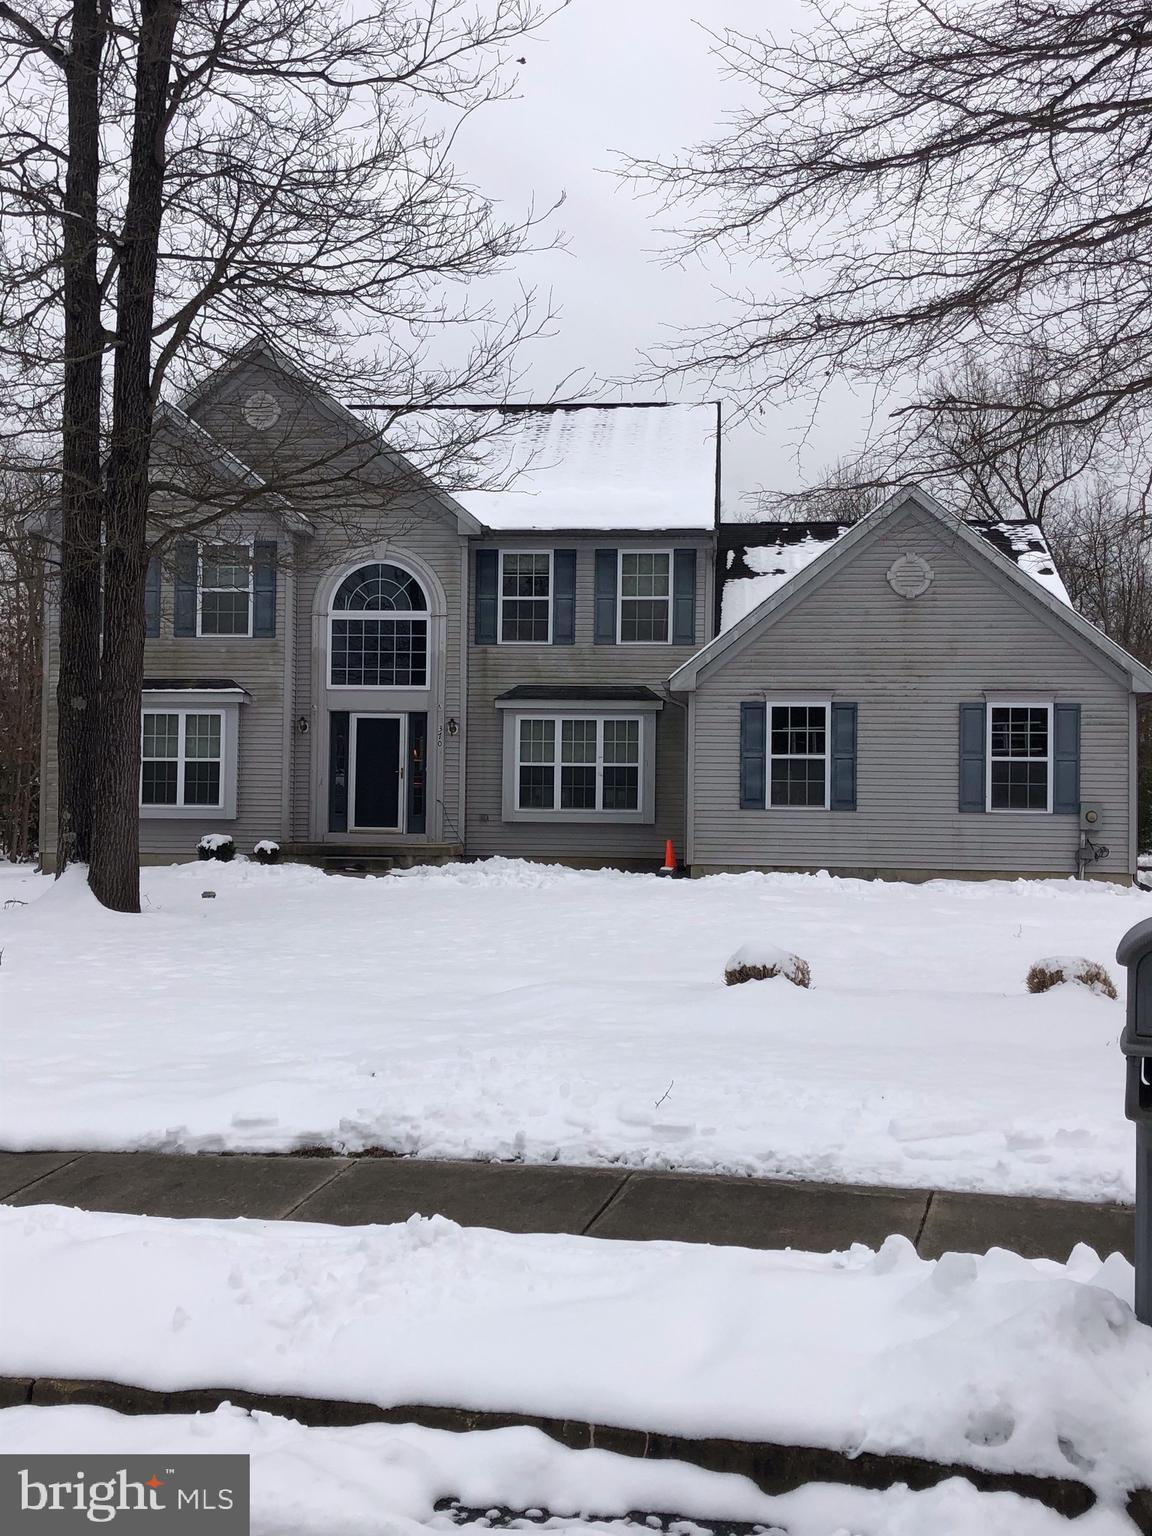 Beautiful 4/5 bedroom home with 3 full baths coming soon. Stay tuned for description and professional photo's!